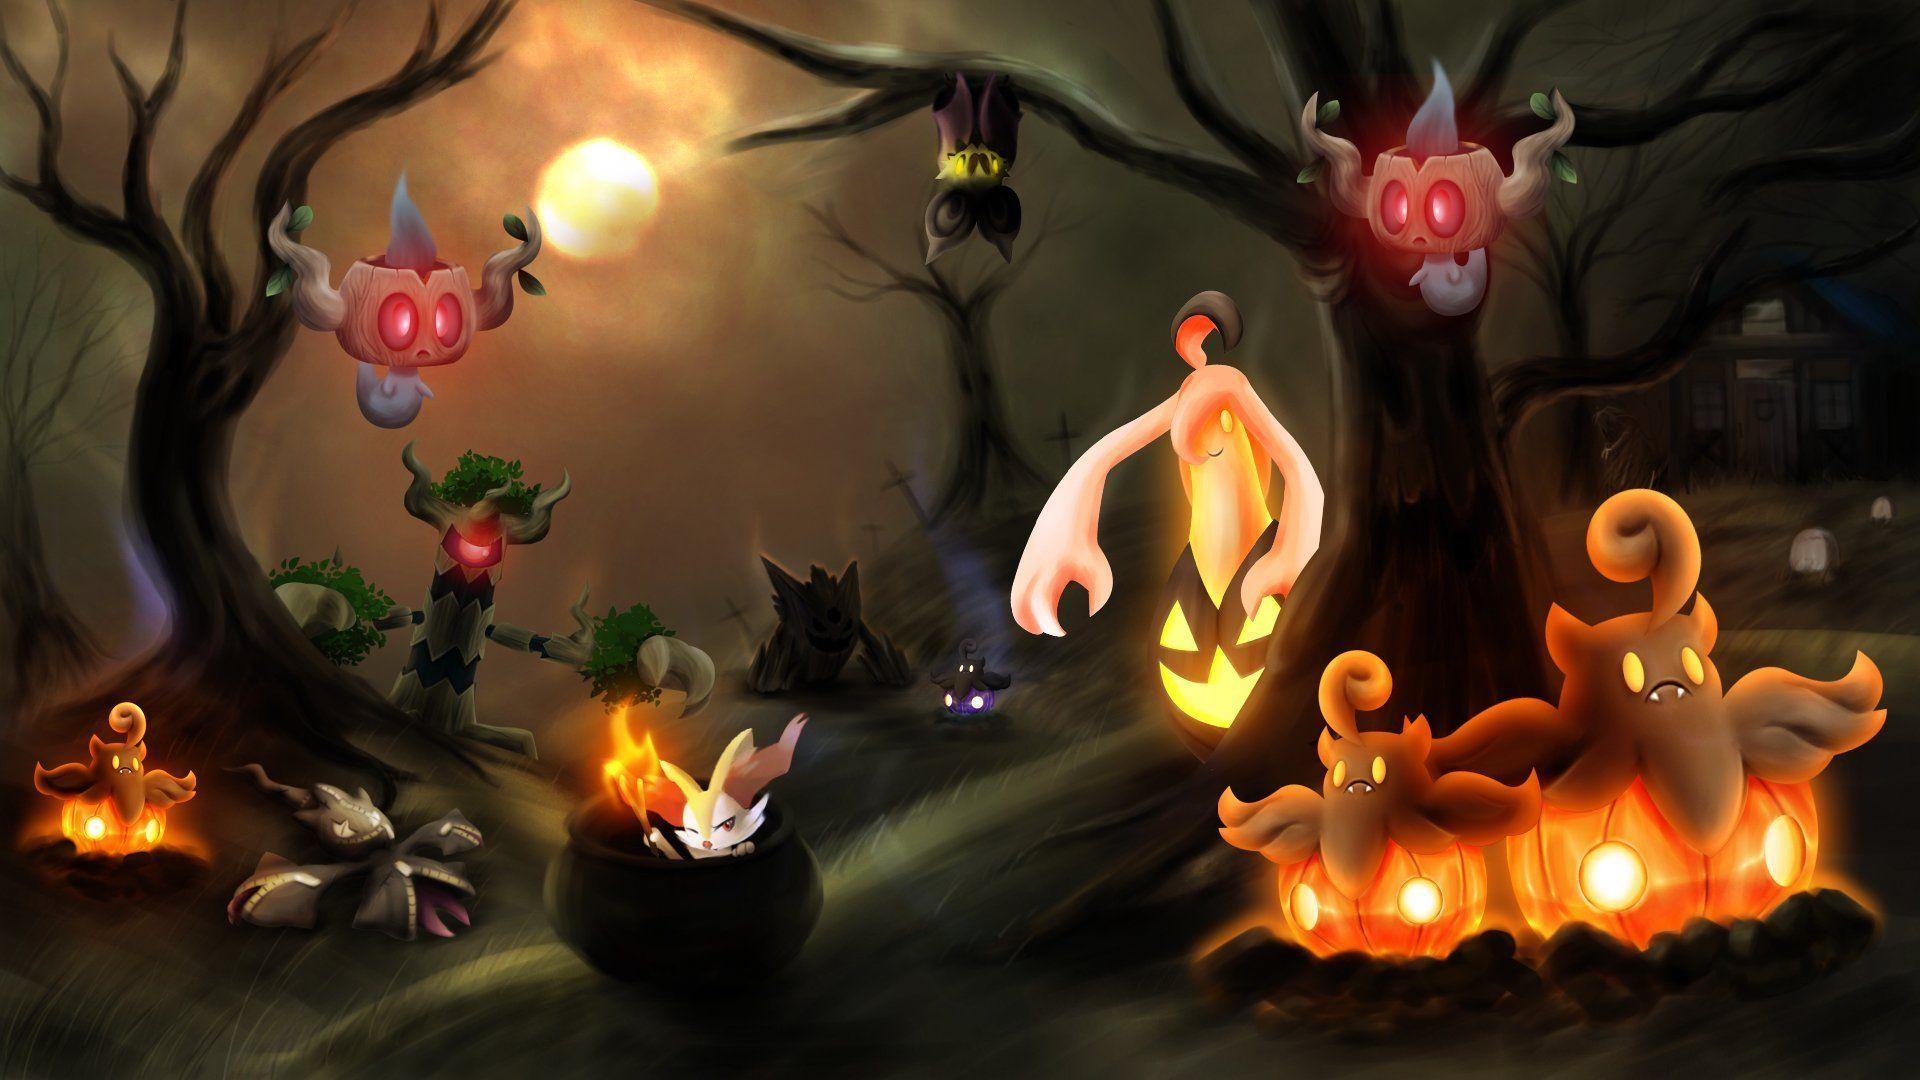 Pokemon Pumpkaboo Halloween Wallpaper | Images Wallpapers ...